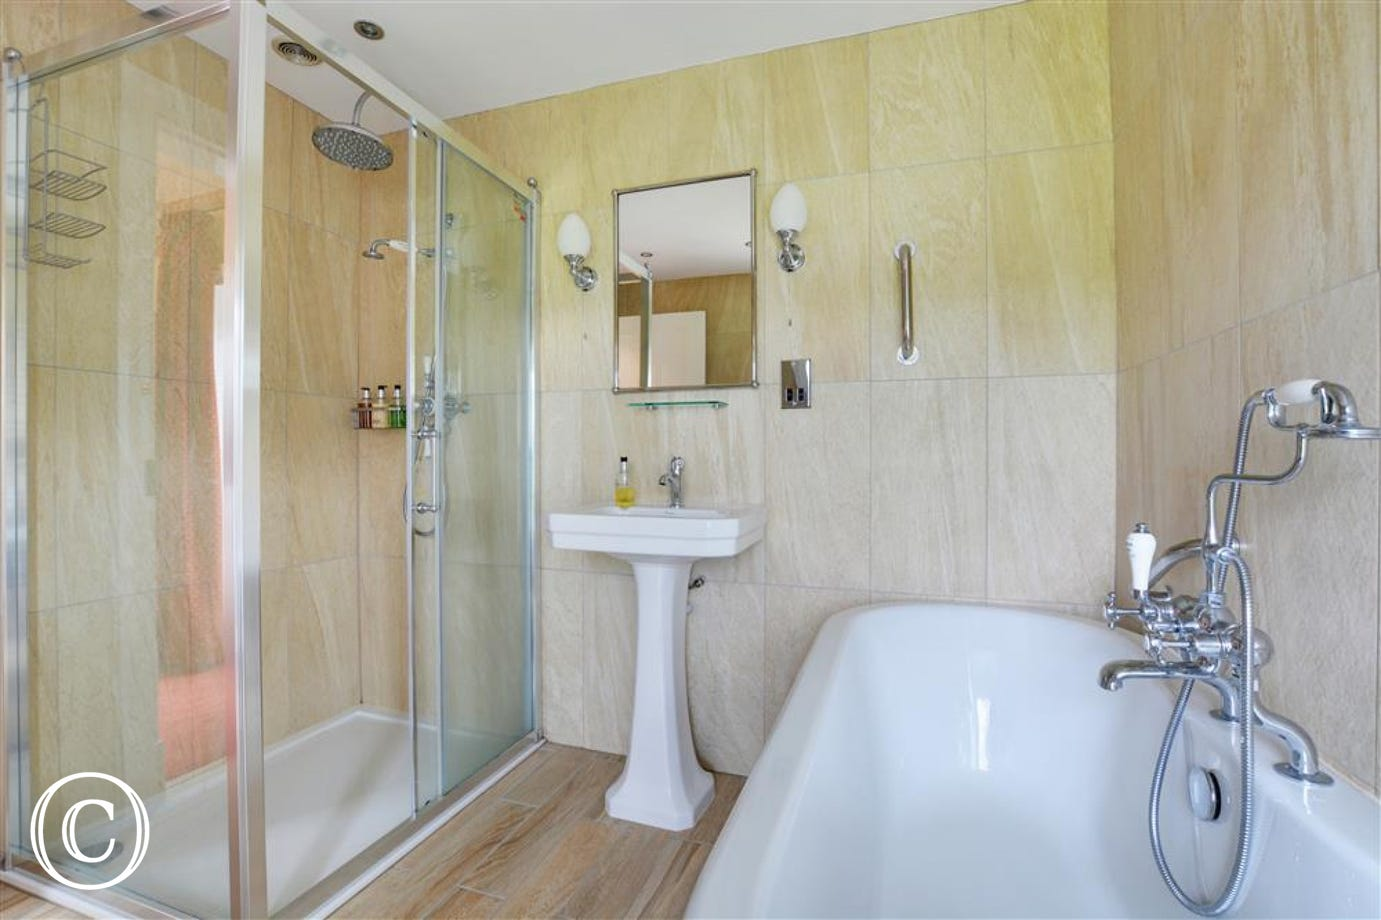 Light and airy bathroom with roll top bath and seperate shower.